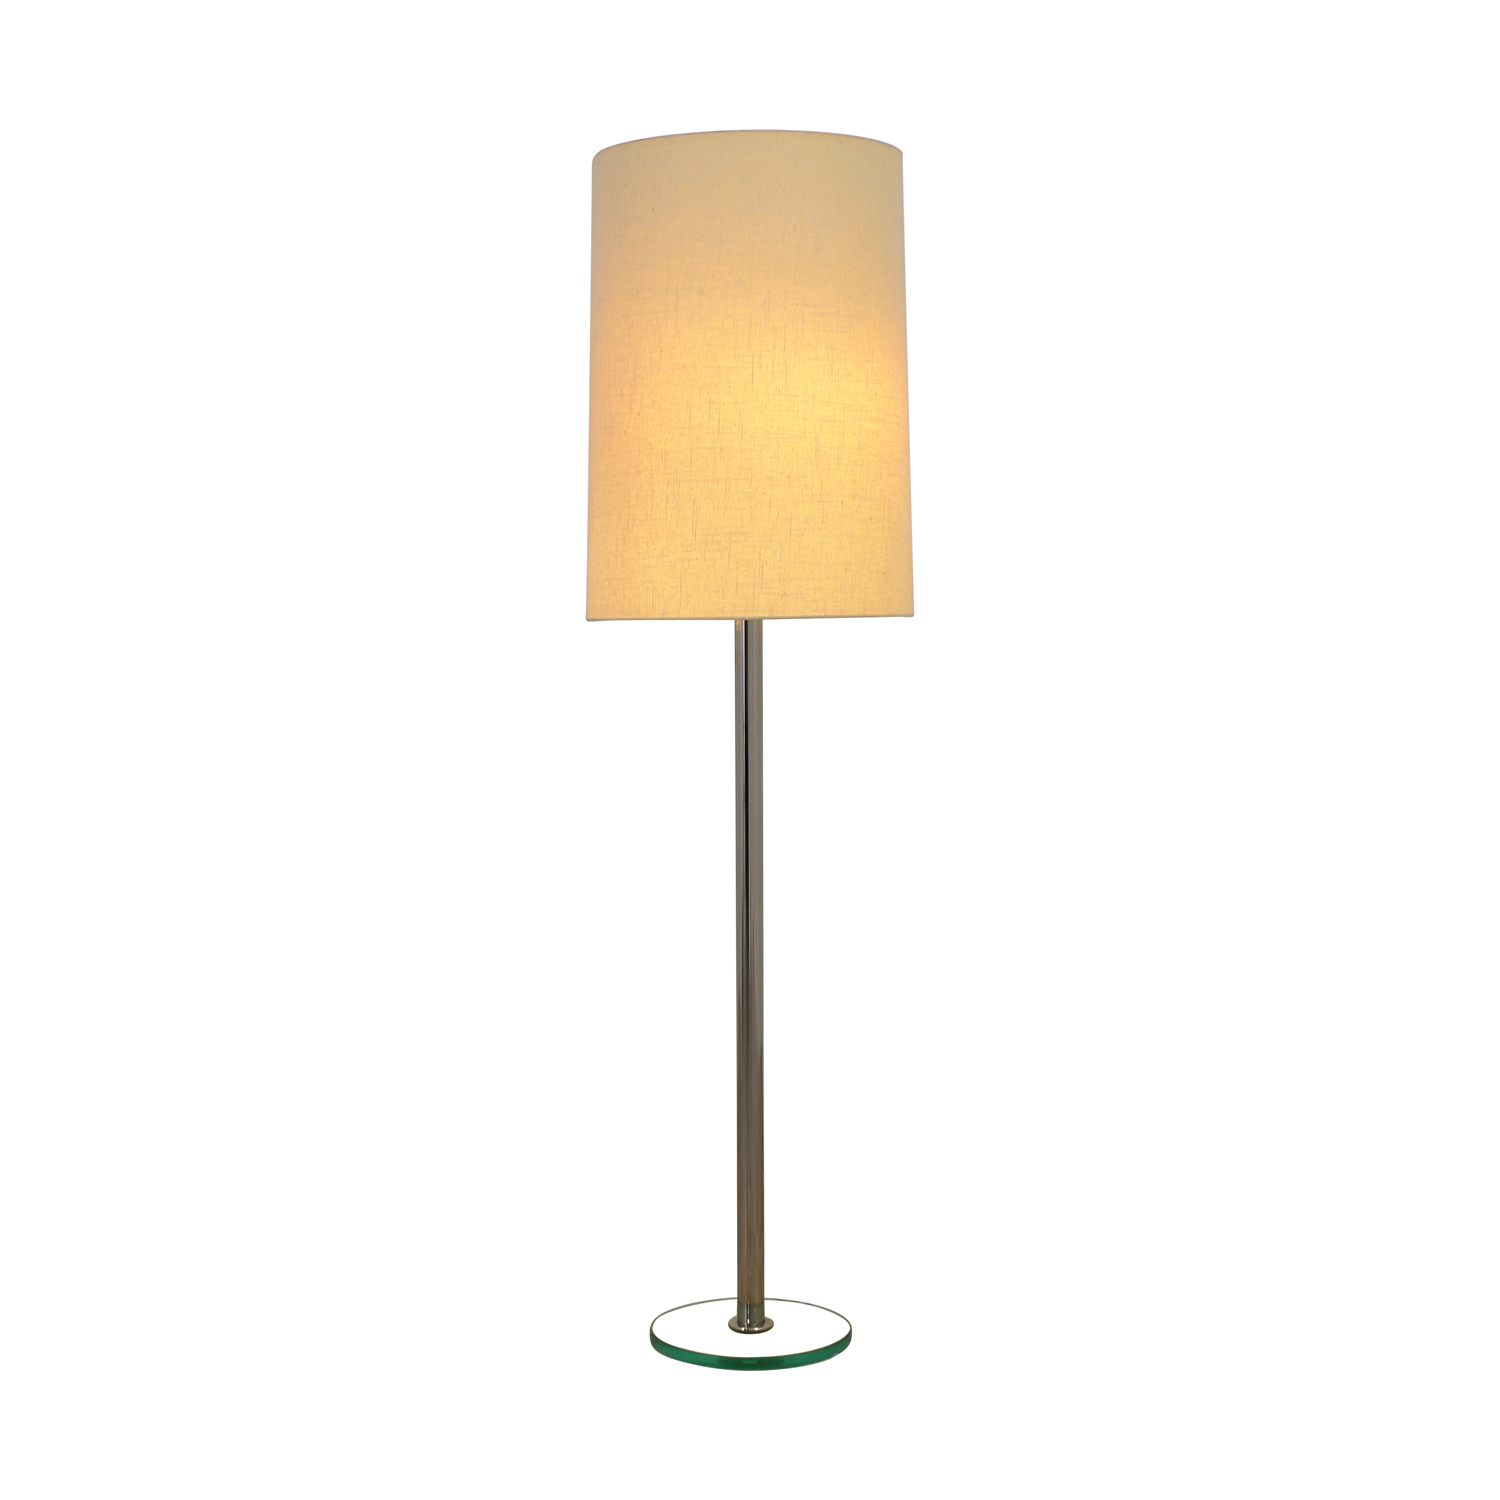 CB2 CB2 Silver with Ghost Base Floor Lamp for sale